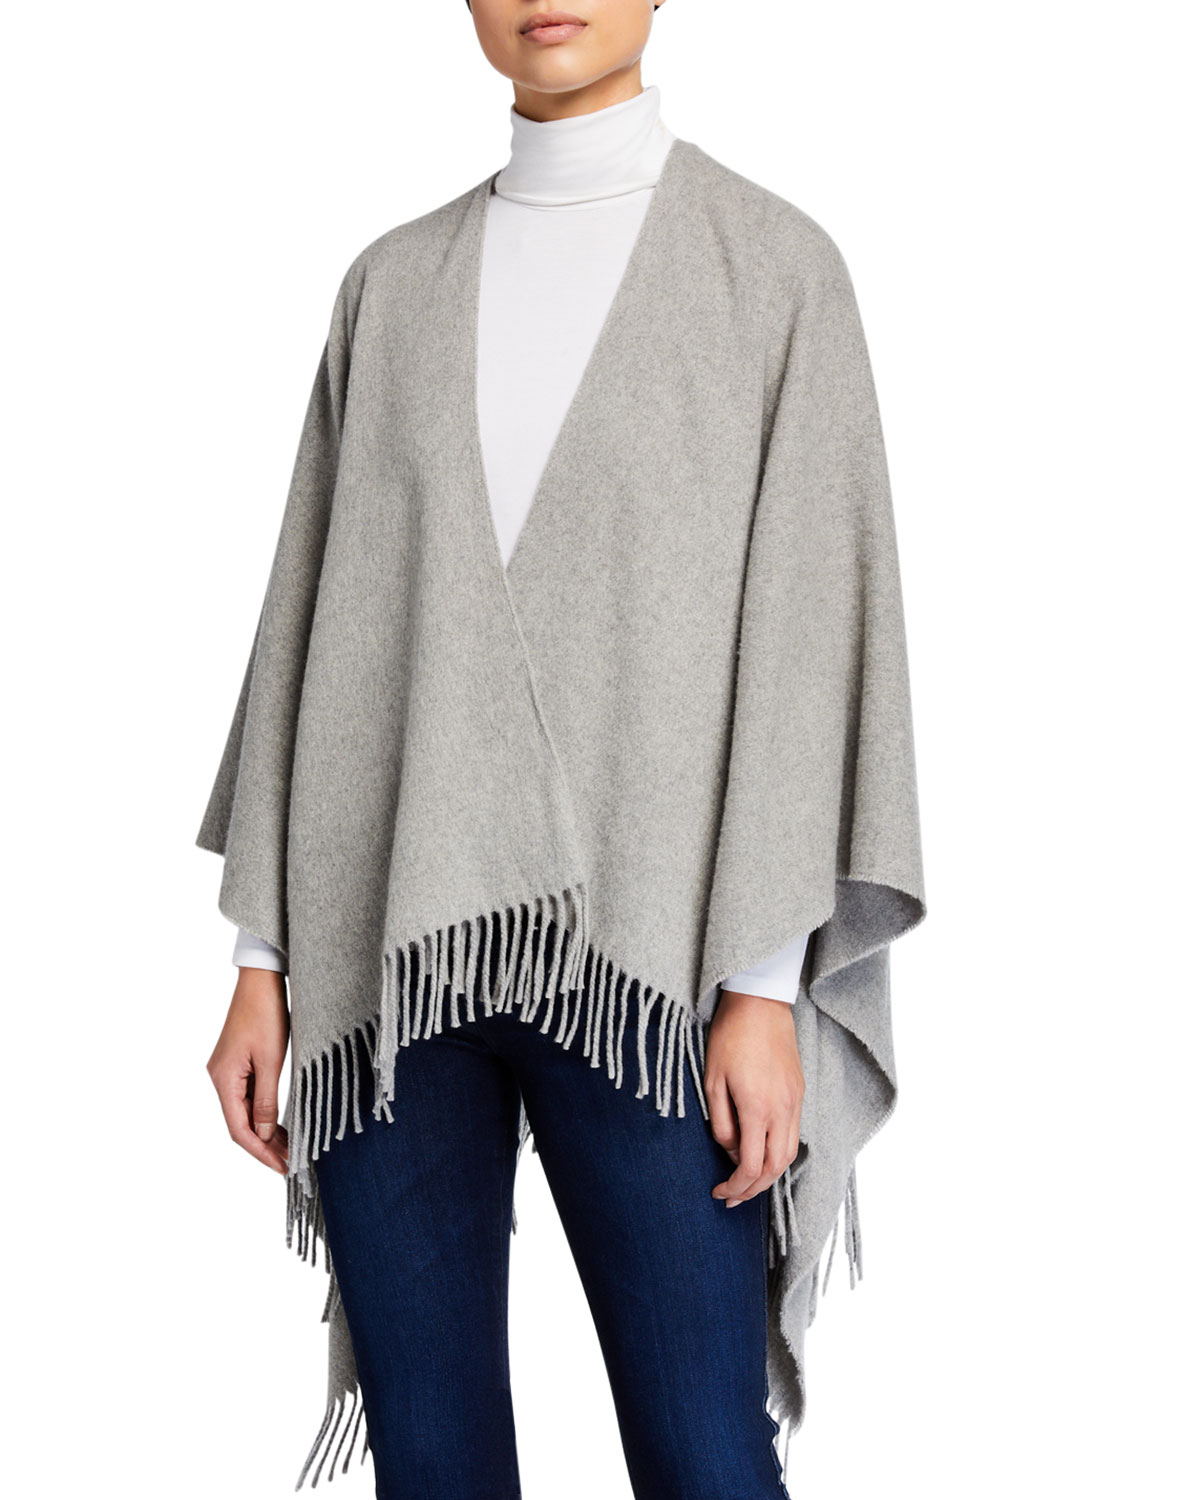 Rag & Bone Tops CASHMERE PONCHO WITH FRINGE